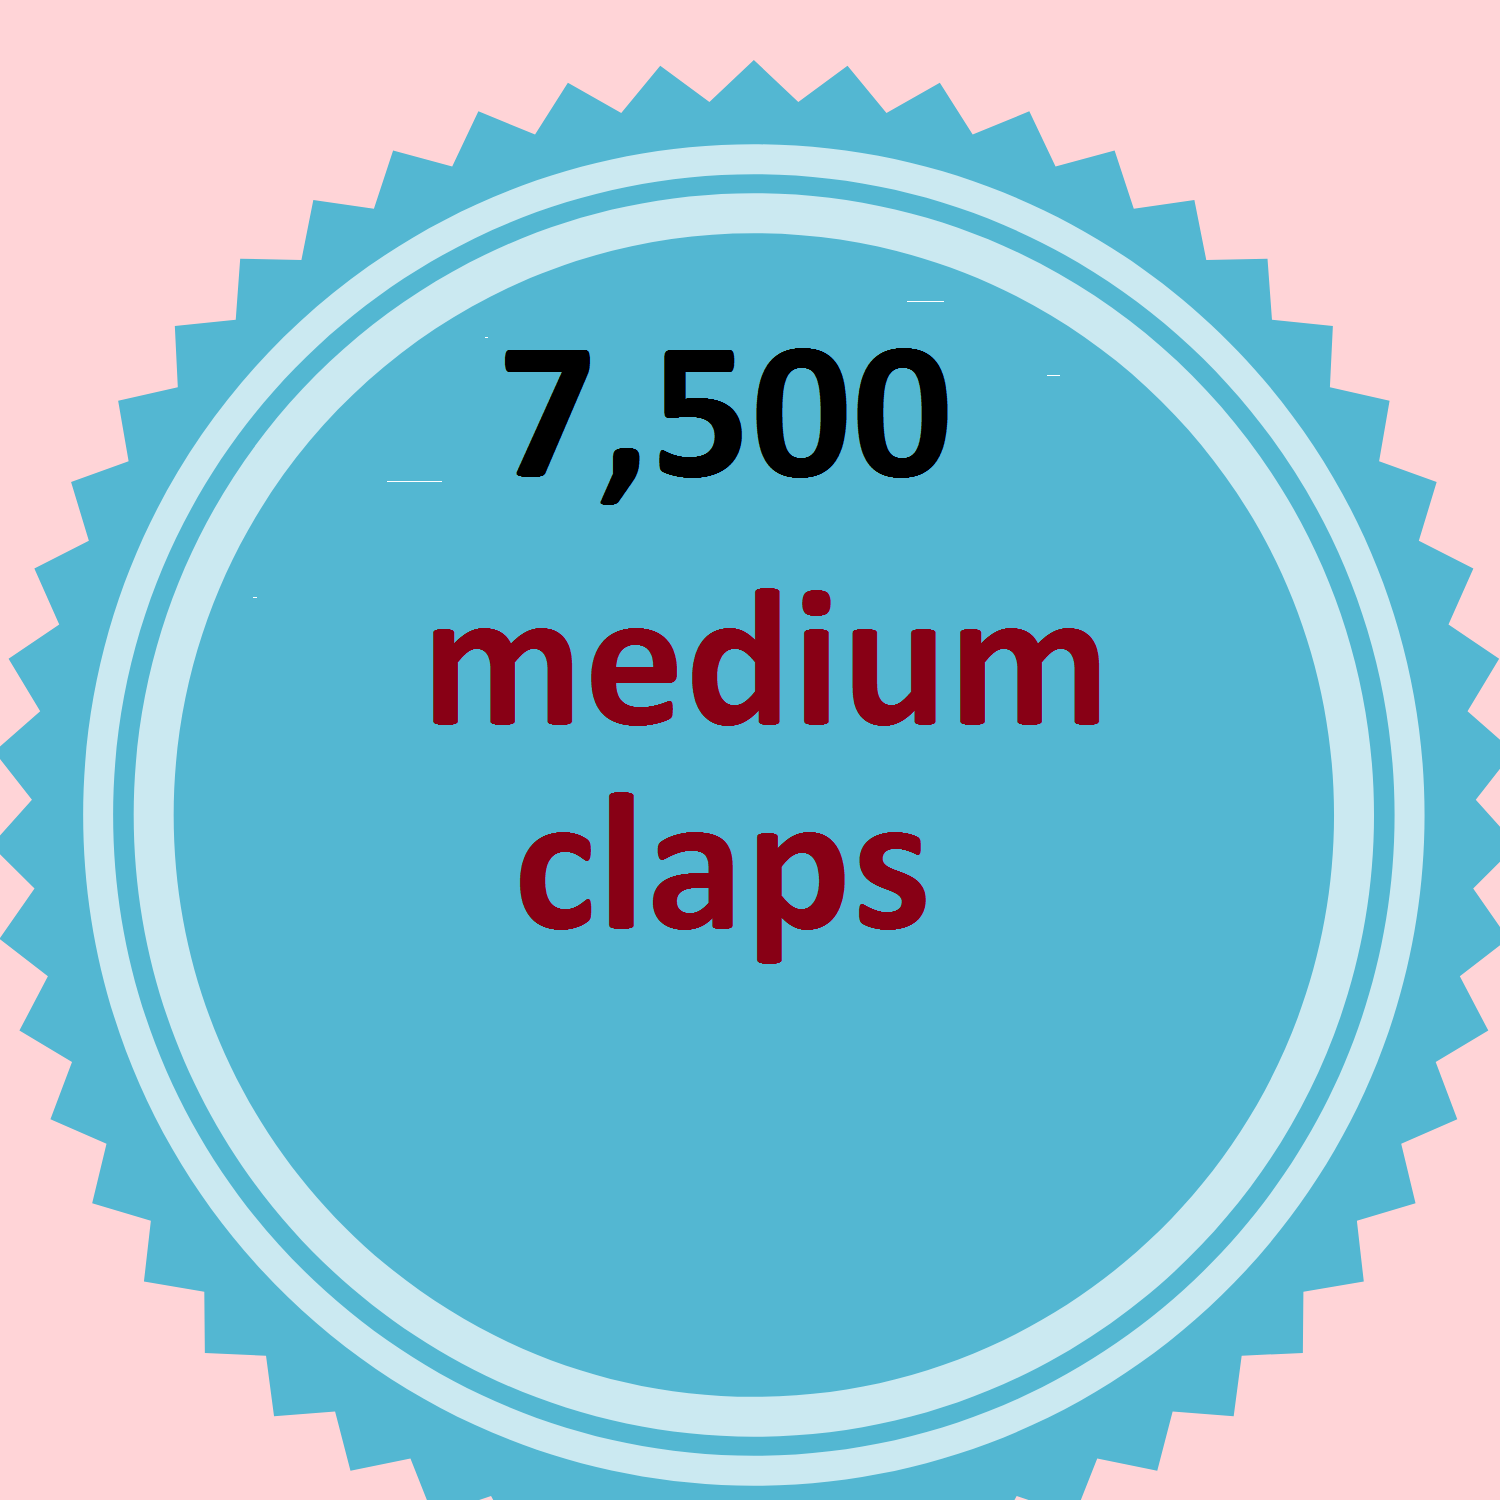 Provide you 7,500 Worldwide medium claps within few hours complete